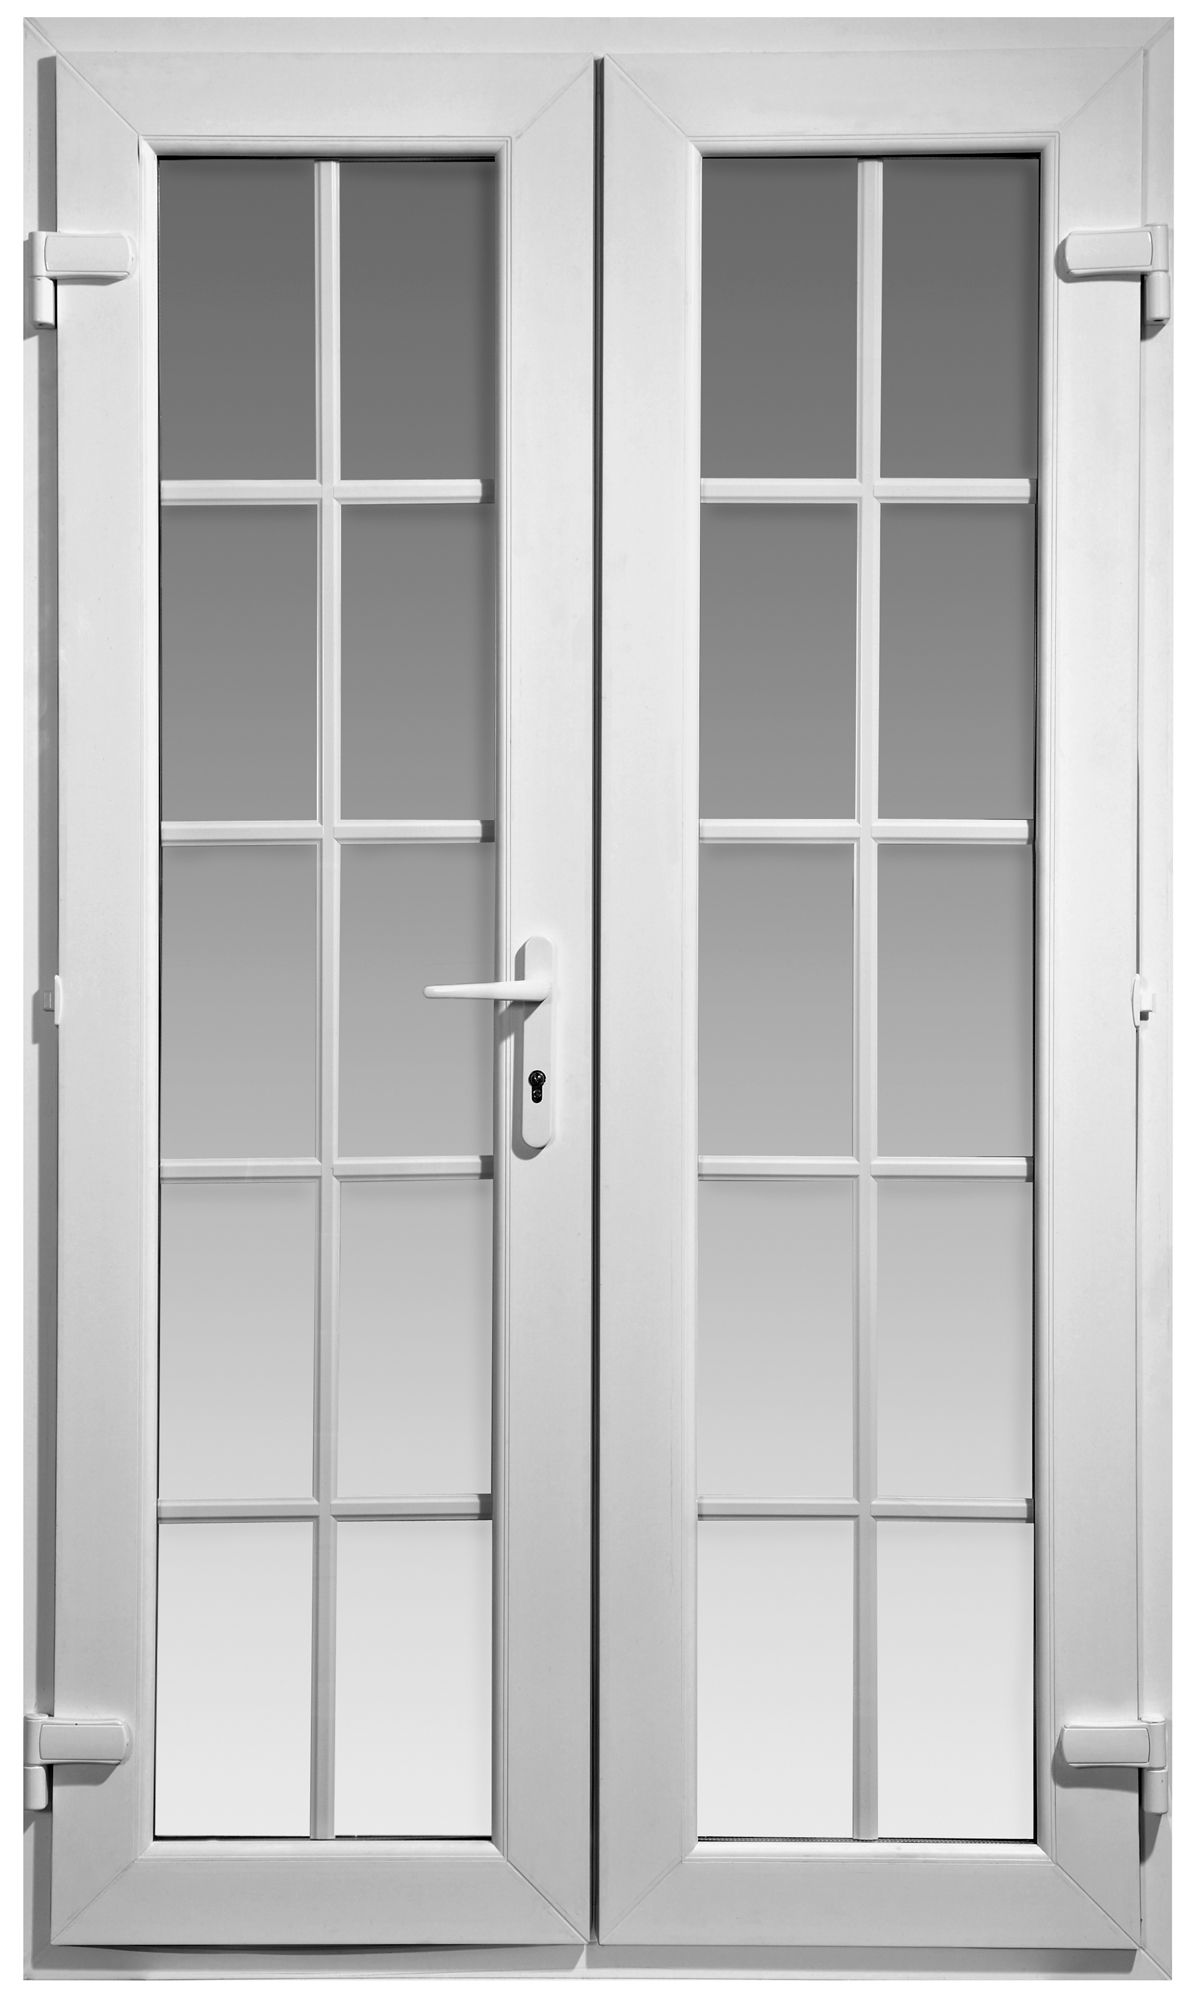 The incredible french interior doors b q photos interior for Small sliding exterior door